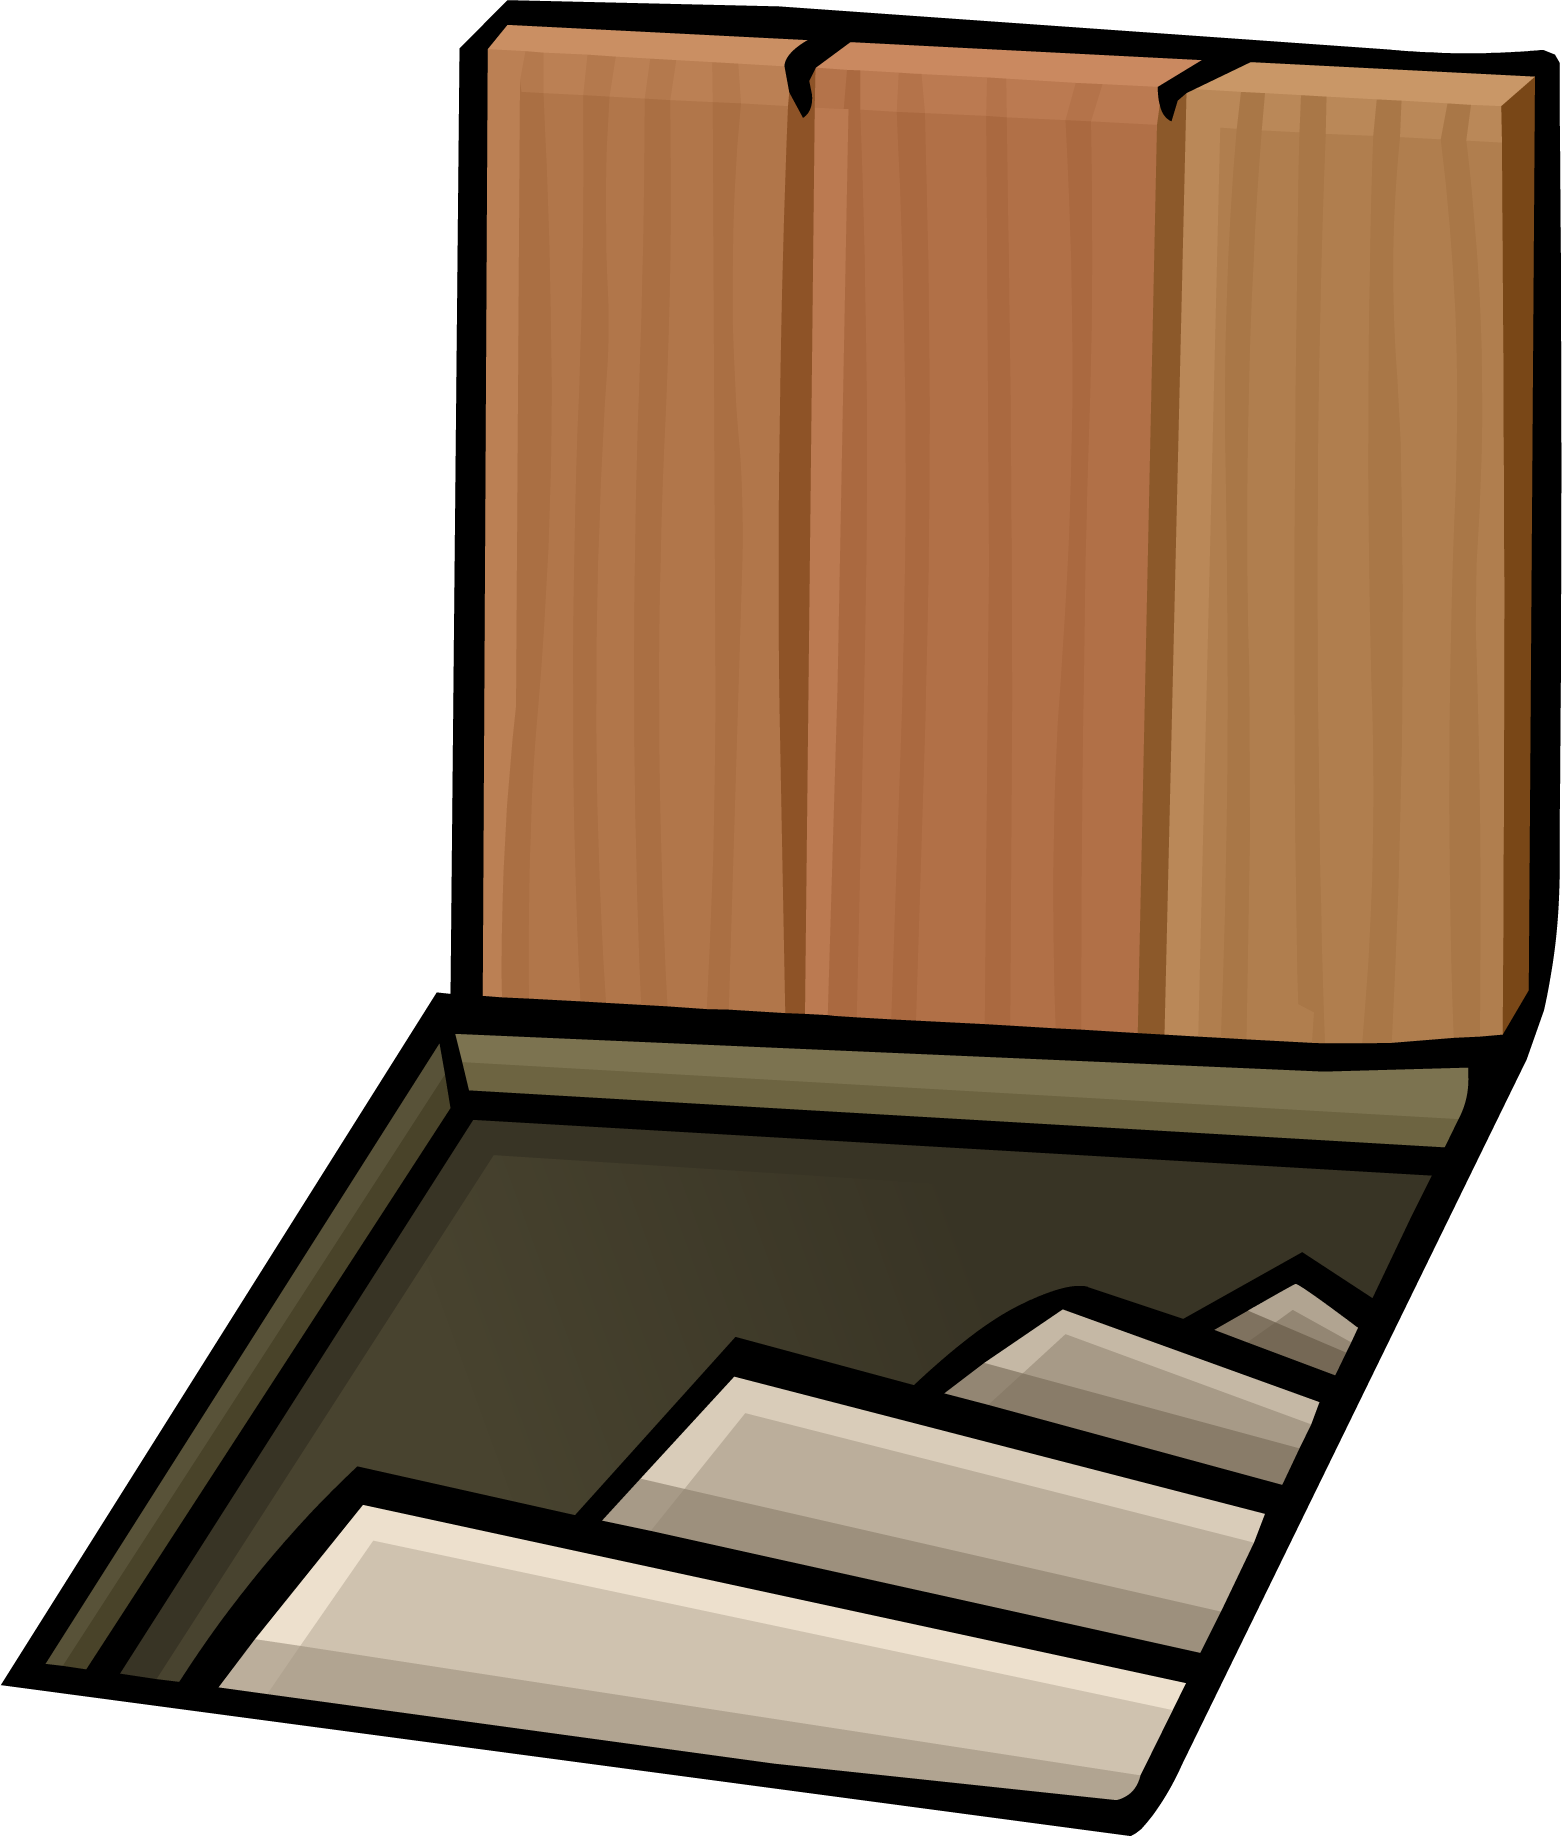 Trap Door open.png  sc 1 st  Club Penguin Wiki - Fandom & Image - Trap Door open.png | Club Penguin Wiki | FANDOM powered by Wikia